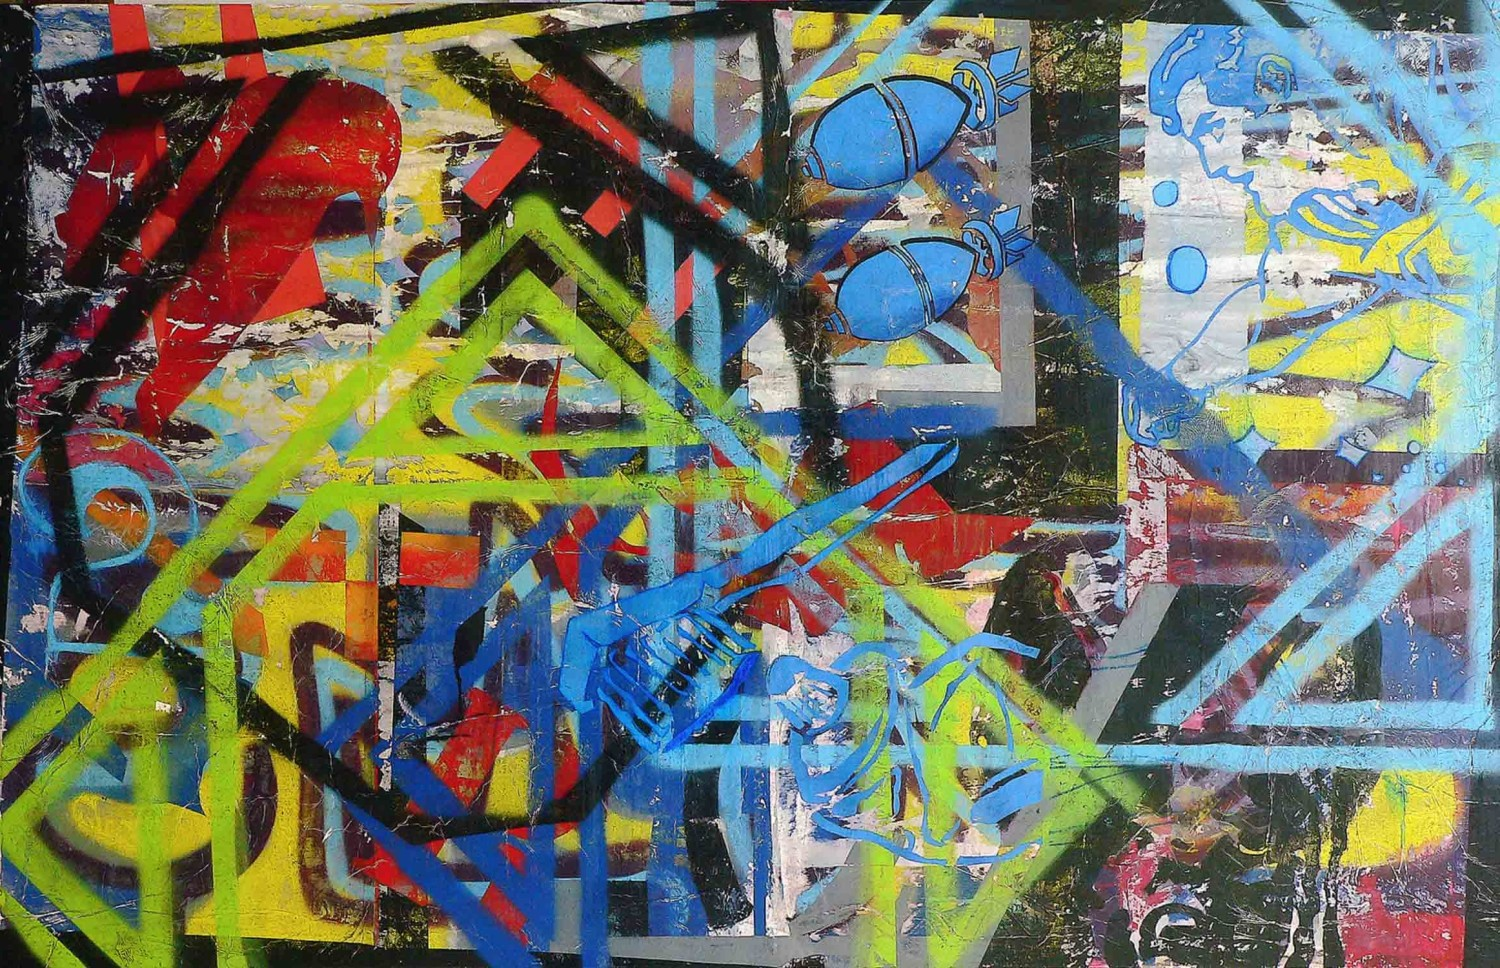 all blues - 116 x 180 cm - acrylic, spray paint, marker pen and collage on canvas - 2010